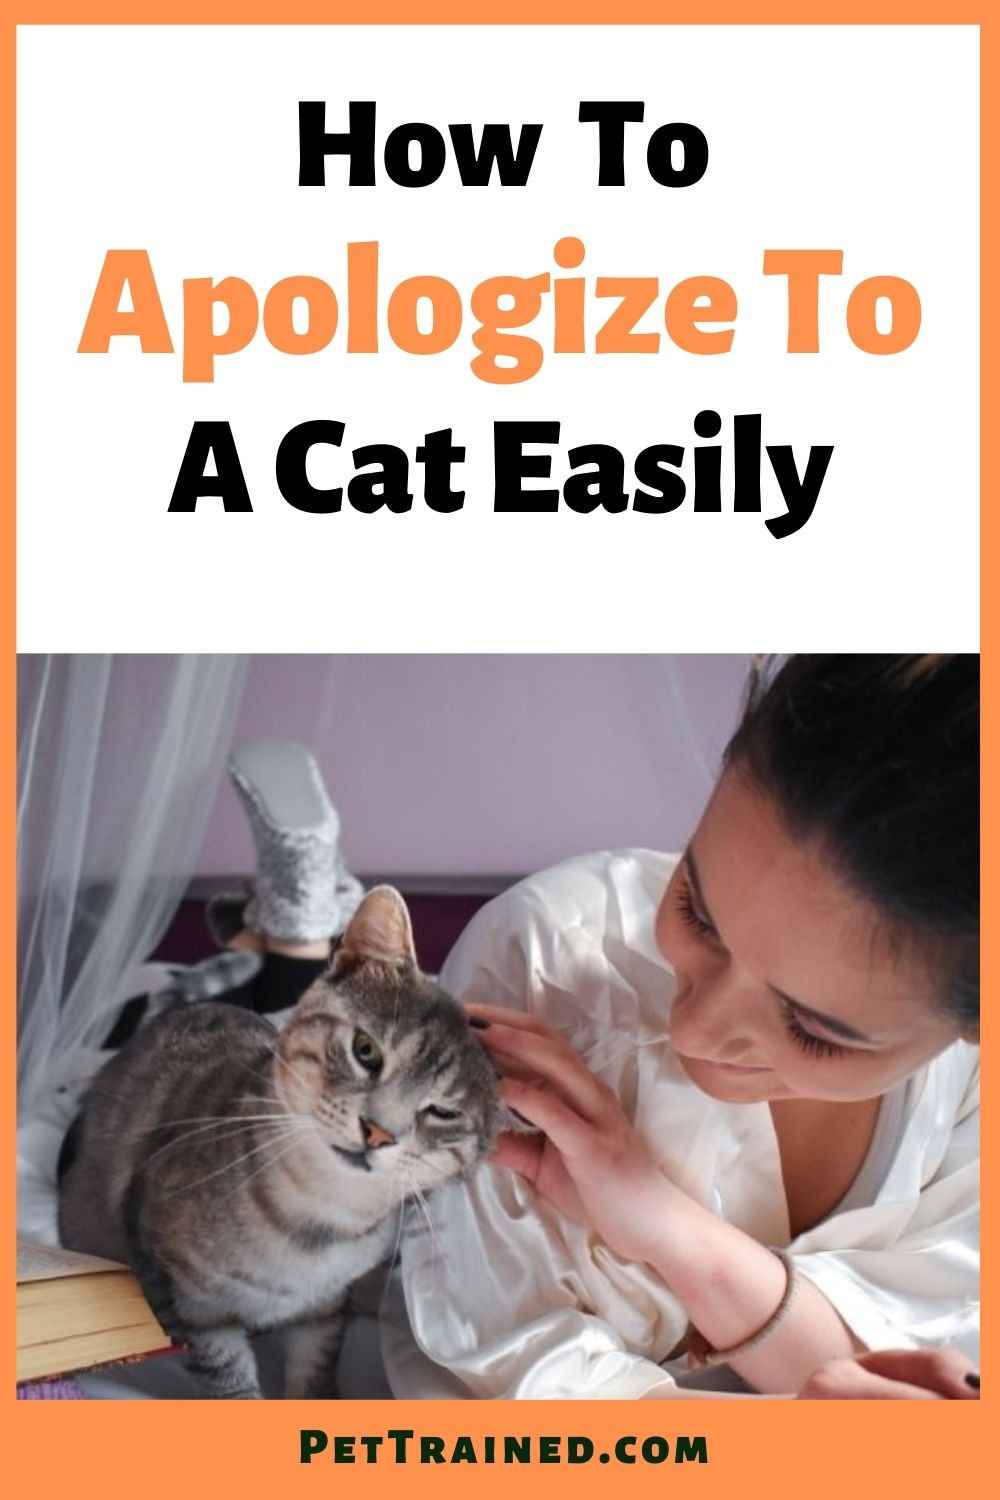 How to apologize to a cat easily